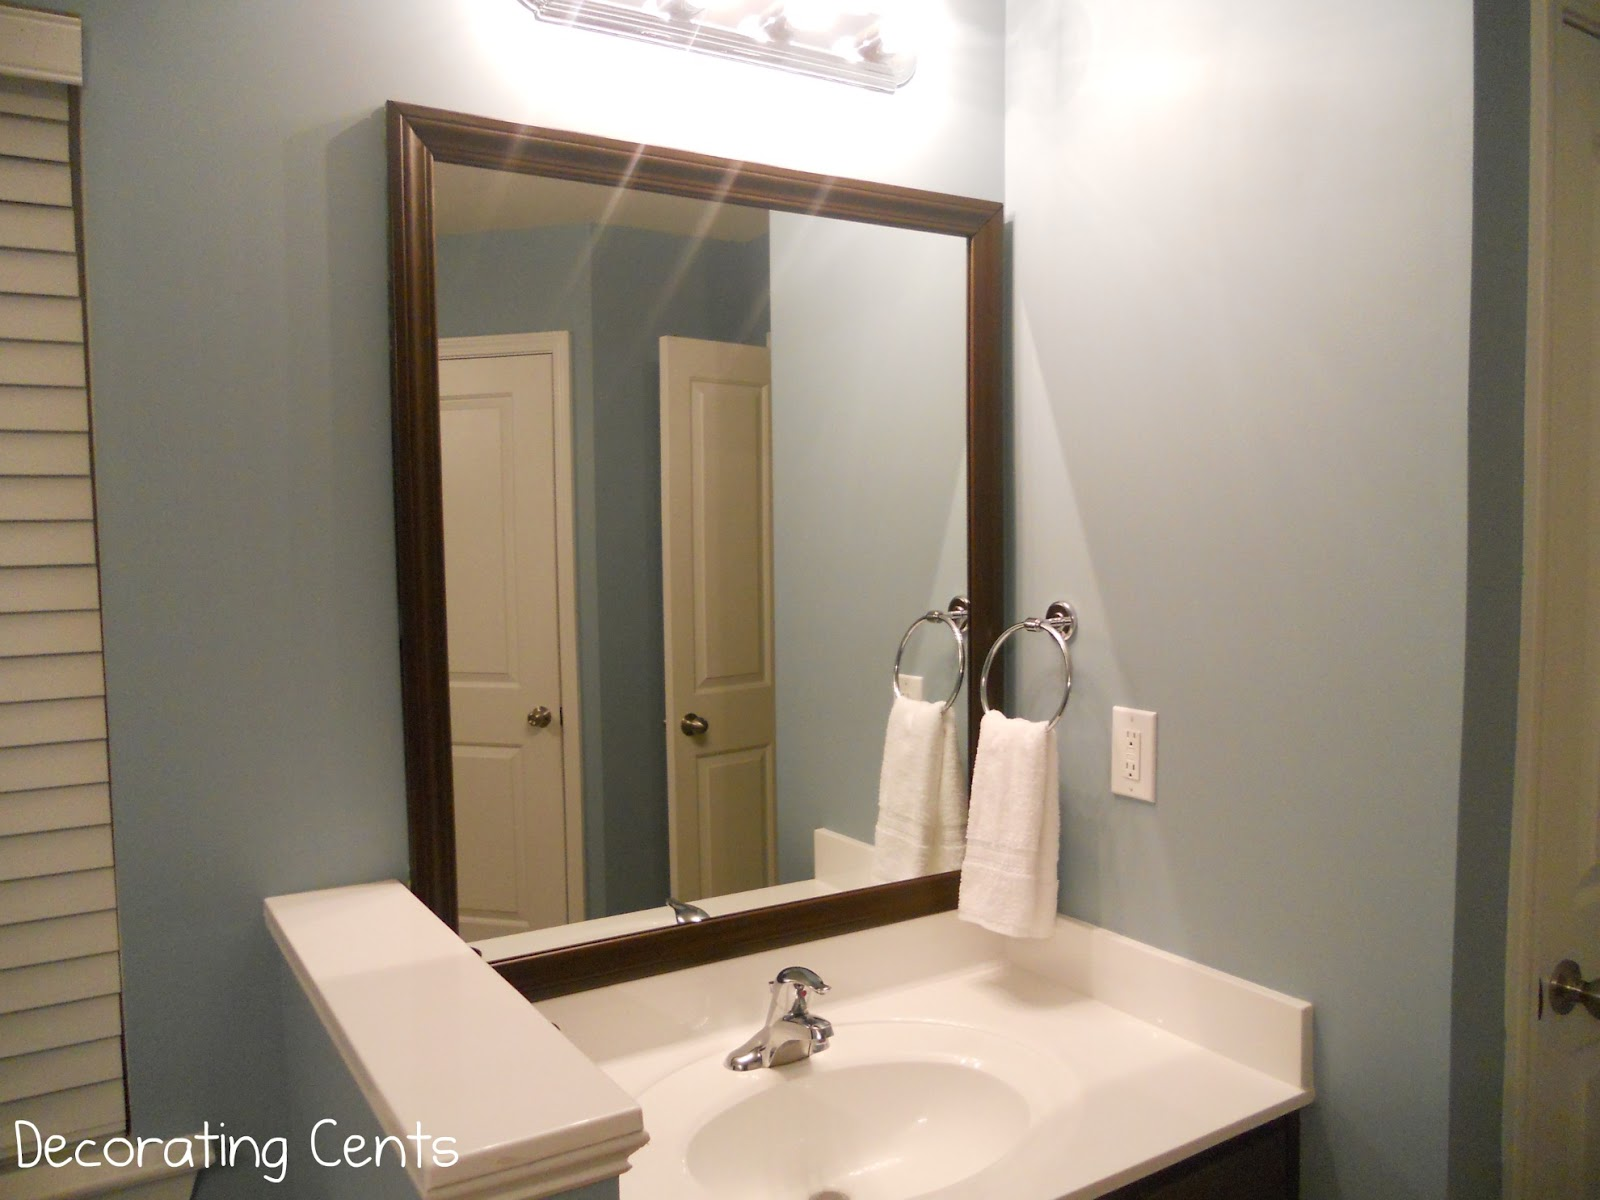 Decorating cents framing the bathroom mirrors for Pictures for your bathroom